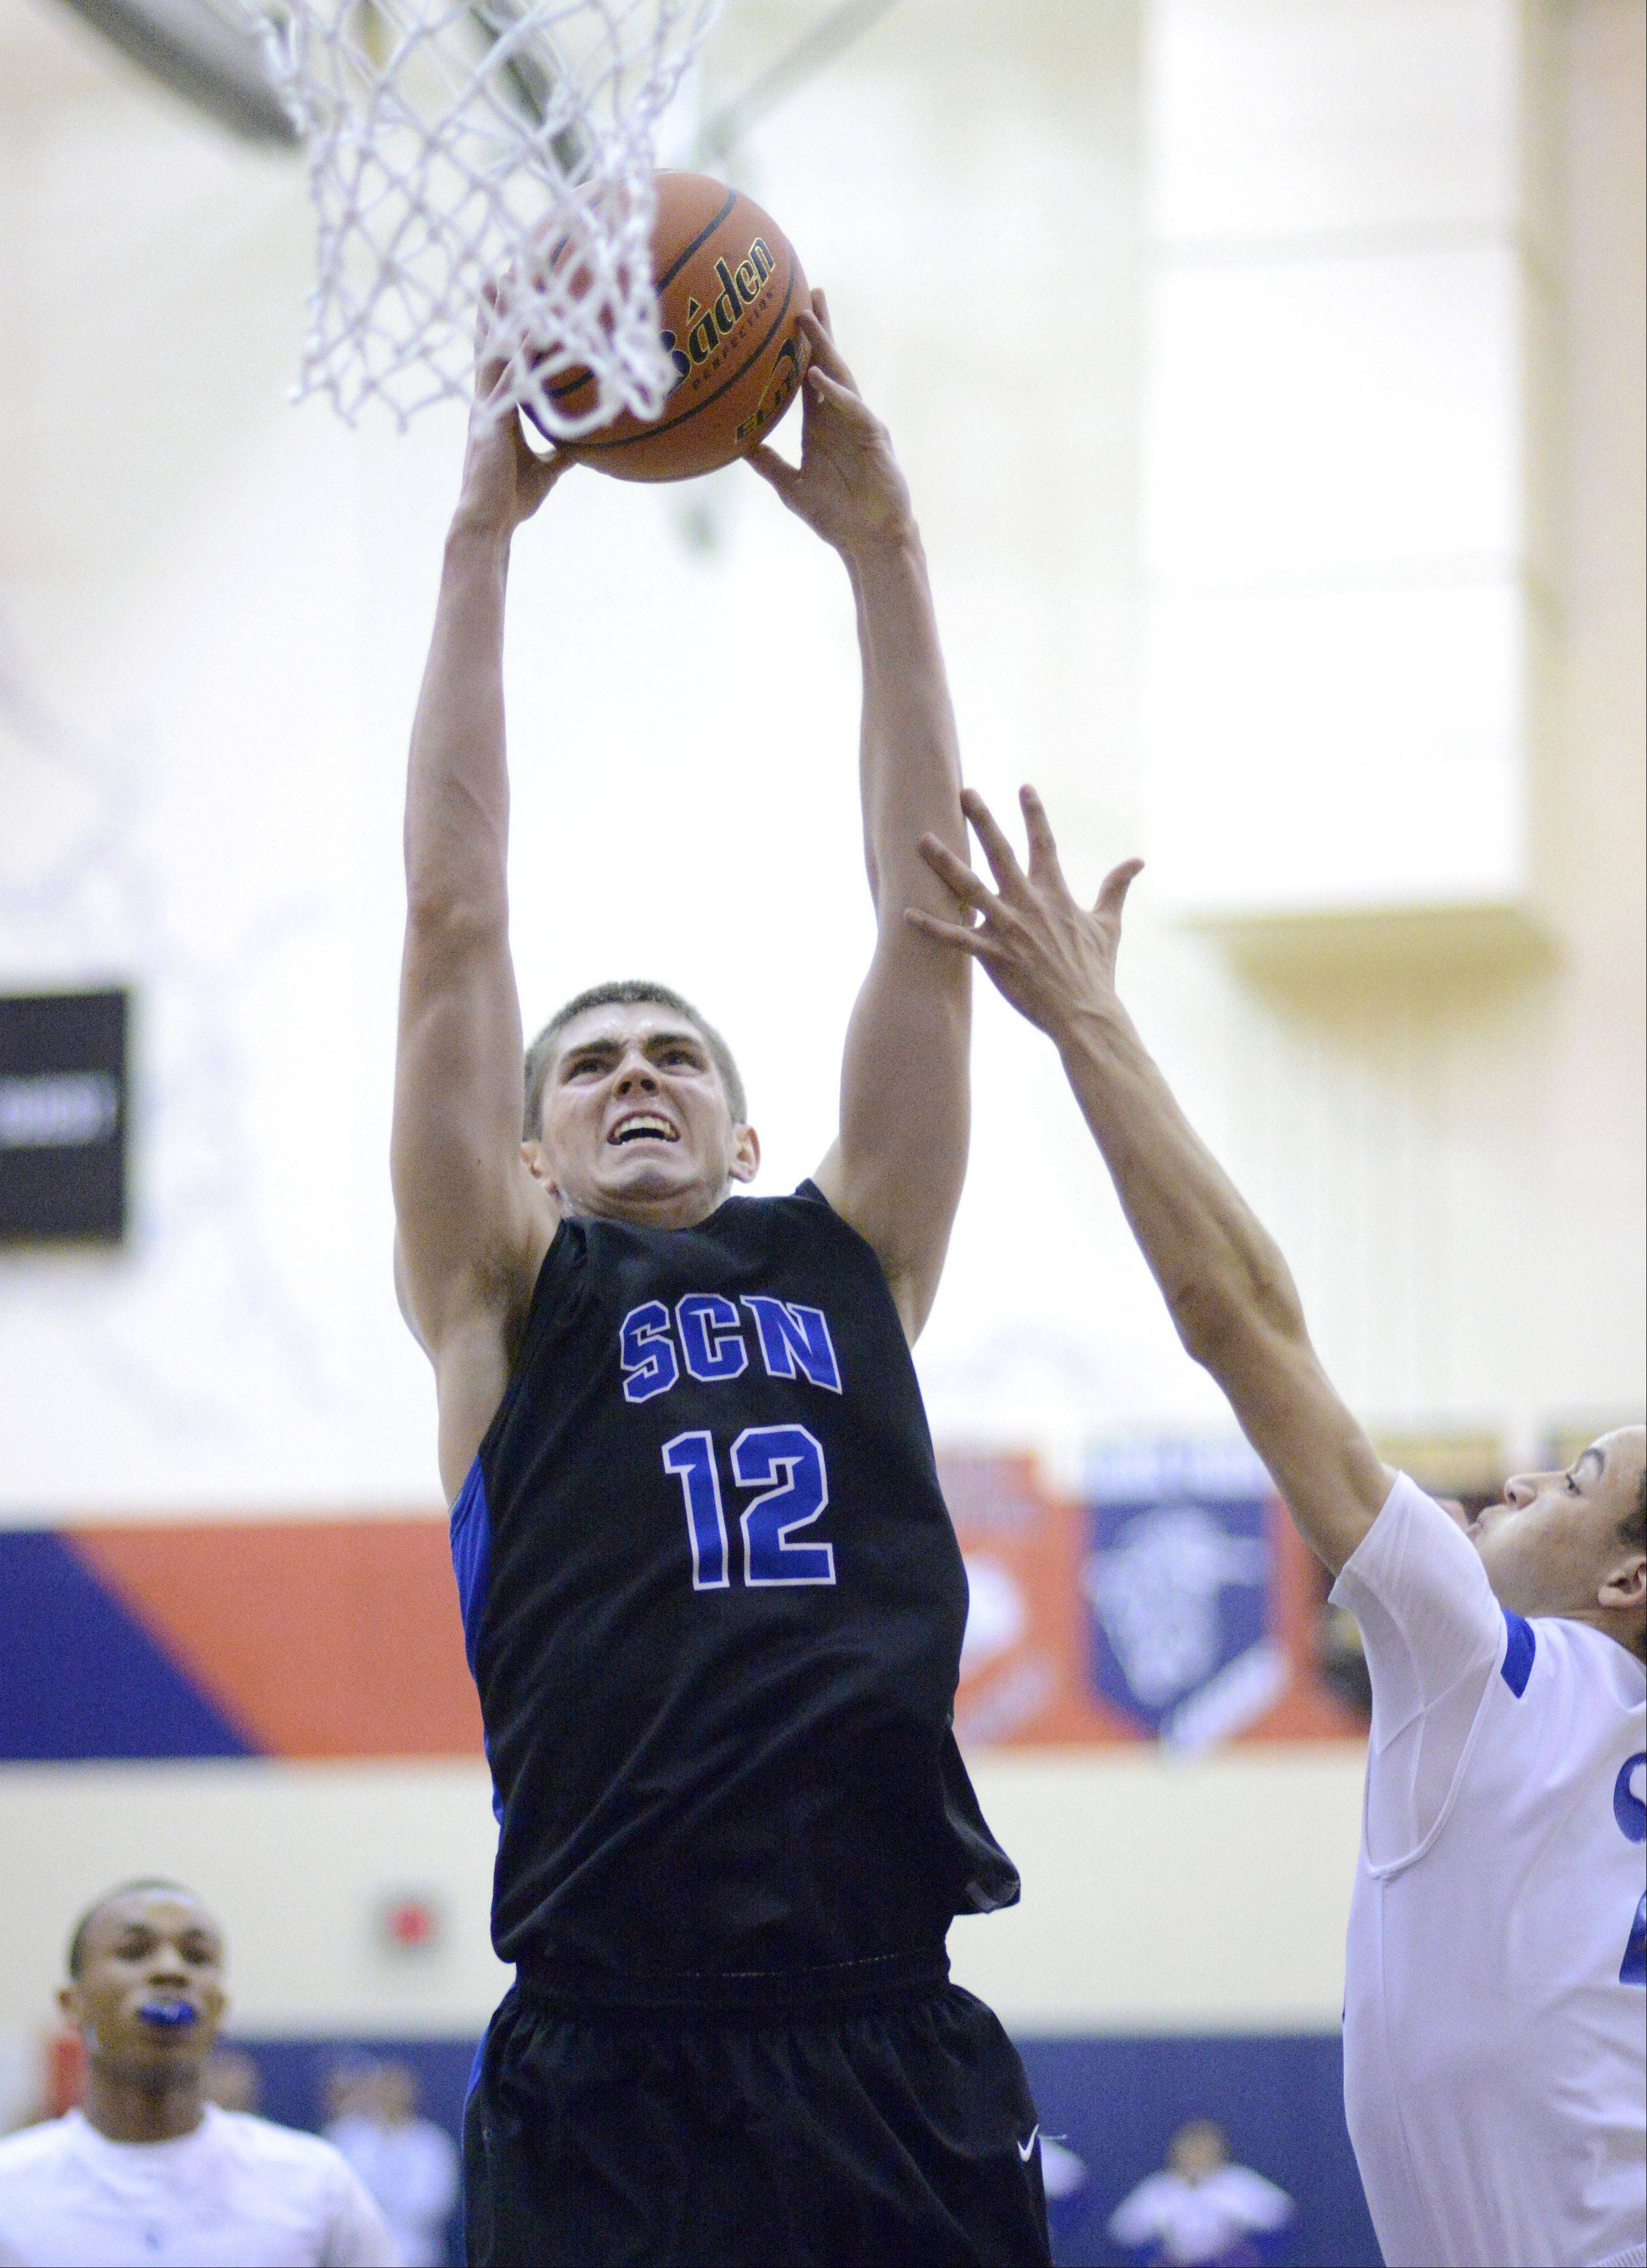 St. Charles North's Quinten Payne dunks a shot over Larkin's Derrick Streety this past season. Payne announced Tuesday he will attend Ball State to play his college basketball.